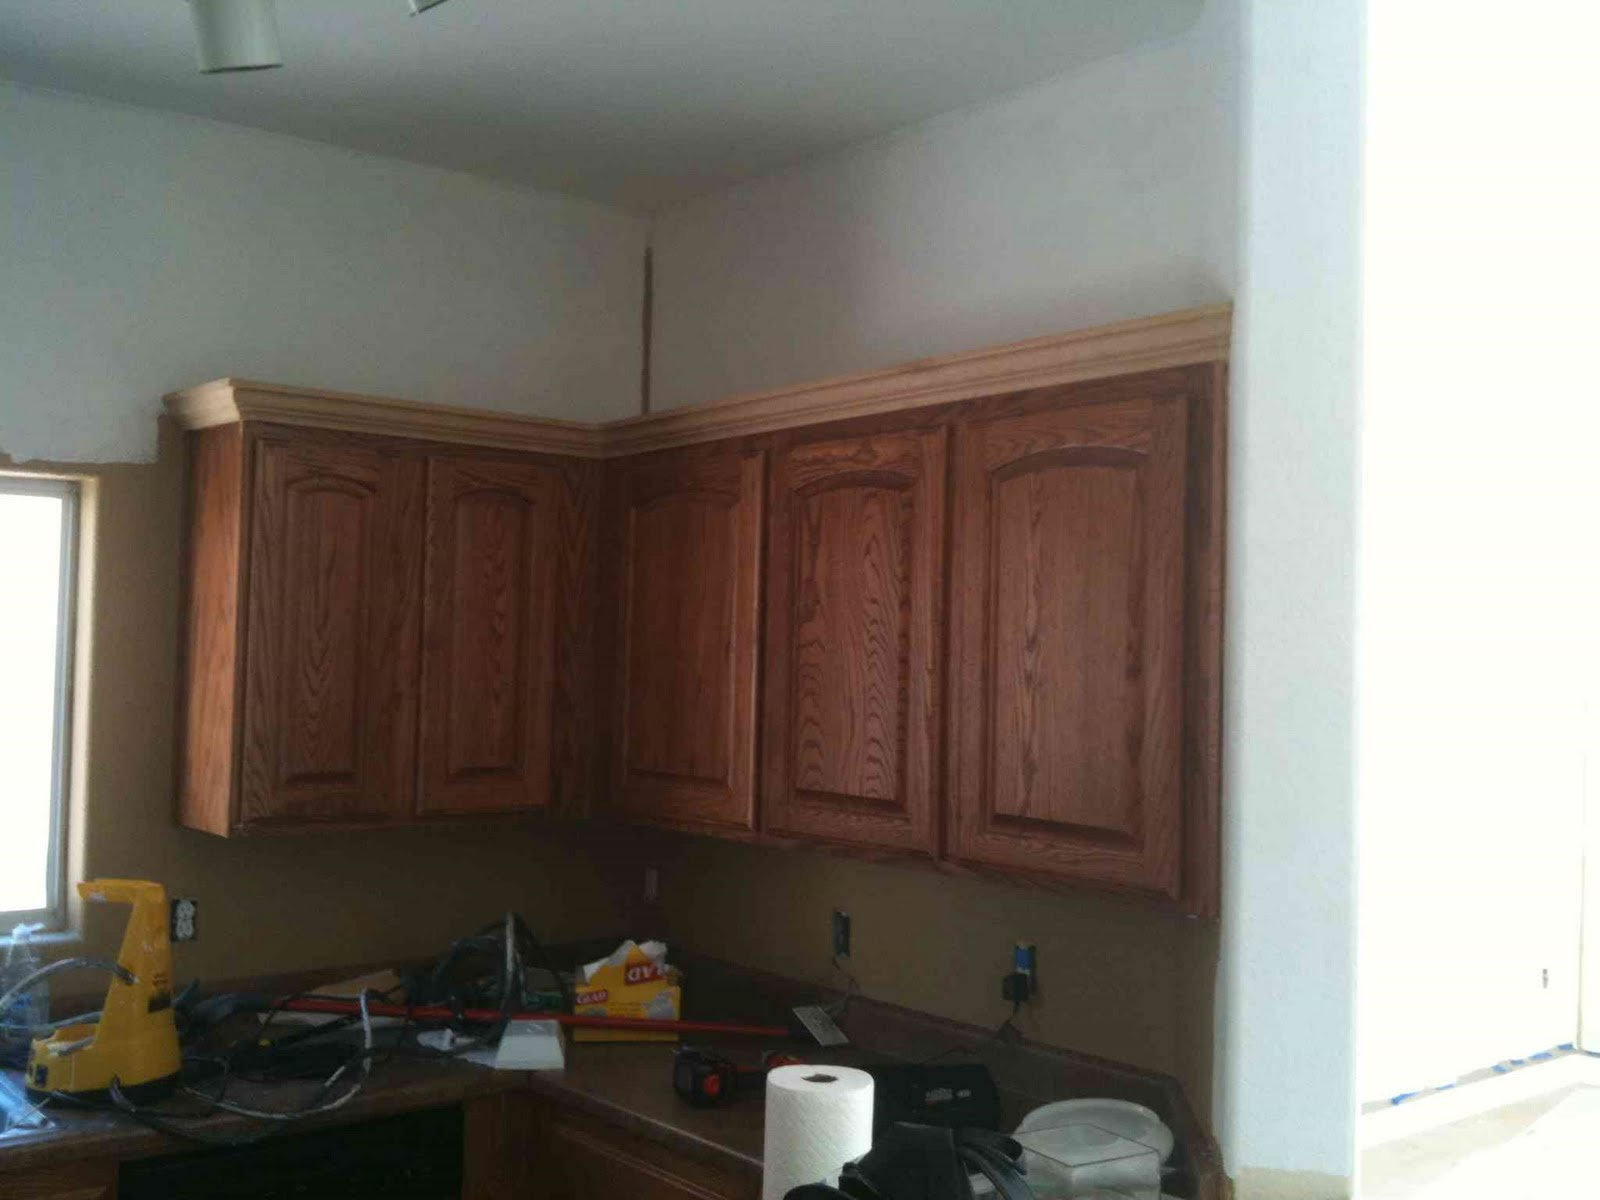 Types Of Crown Molding For Kitchen Cabinets Kitchen Cabinets Crown Molding